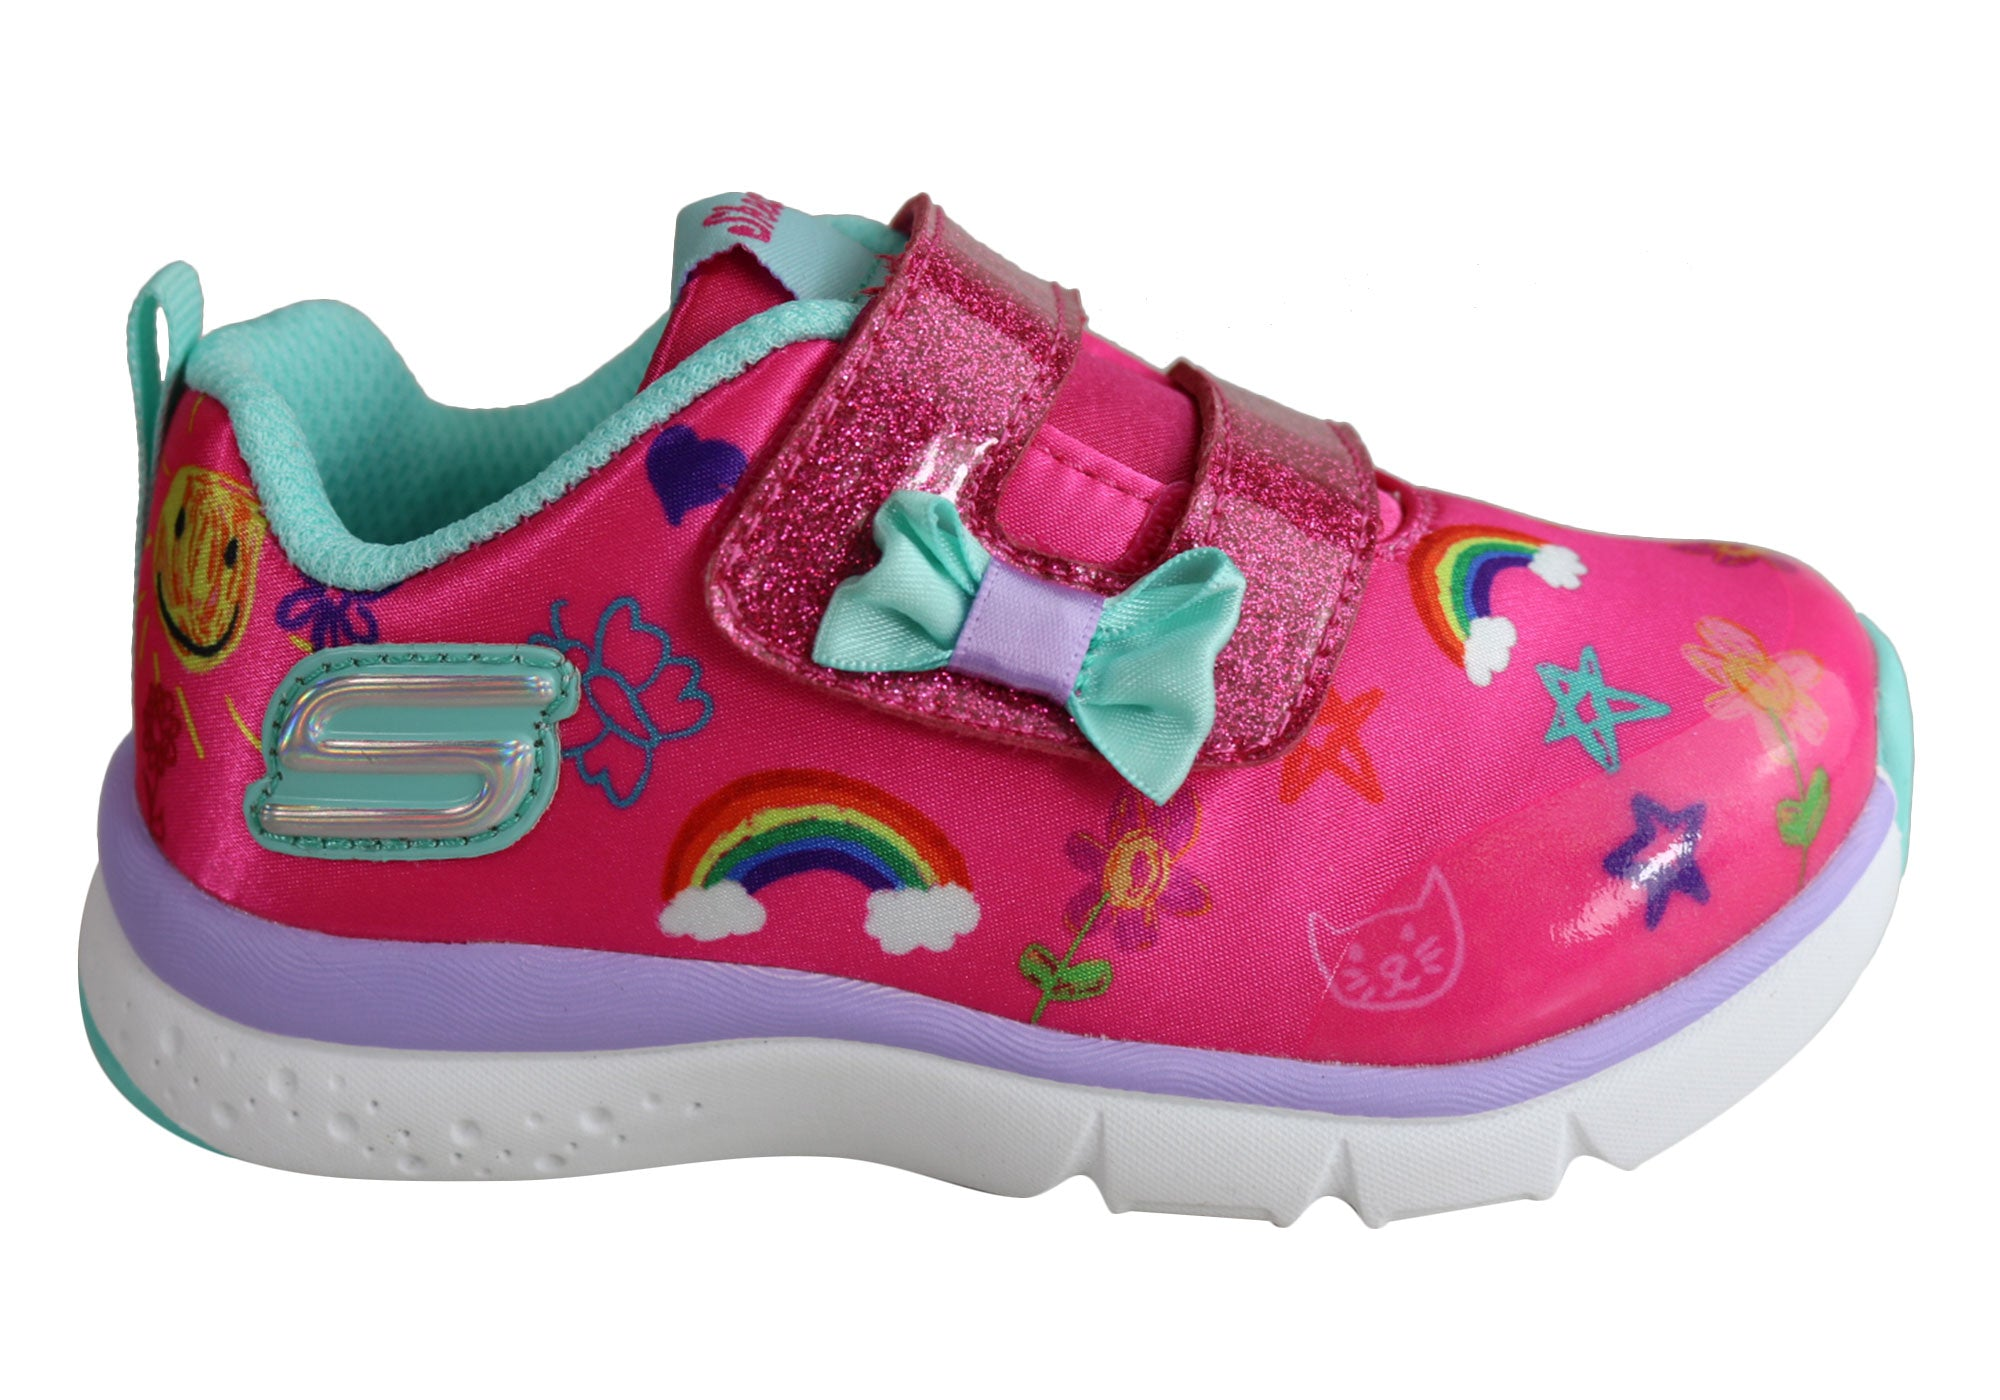 7cbe049fdf Skechers Infant Girls Jump Lites Adjustable Strap Lightweight Shoes ...